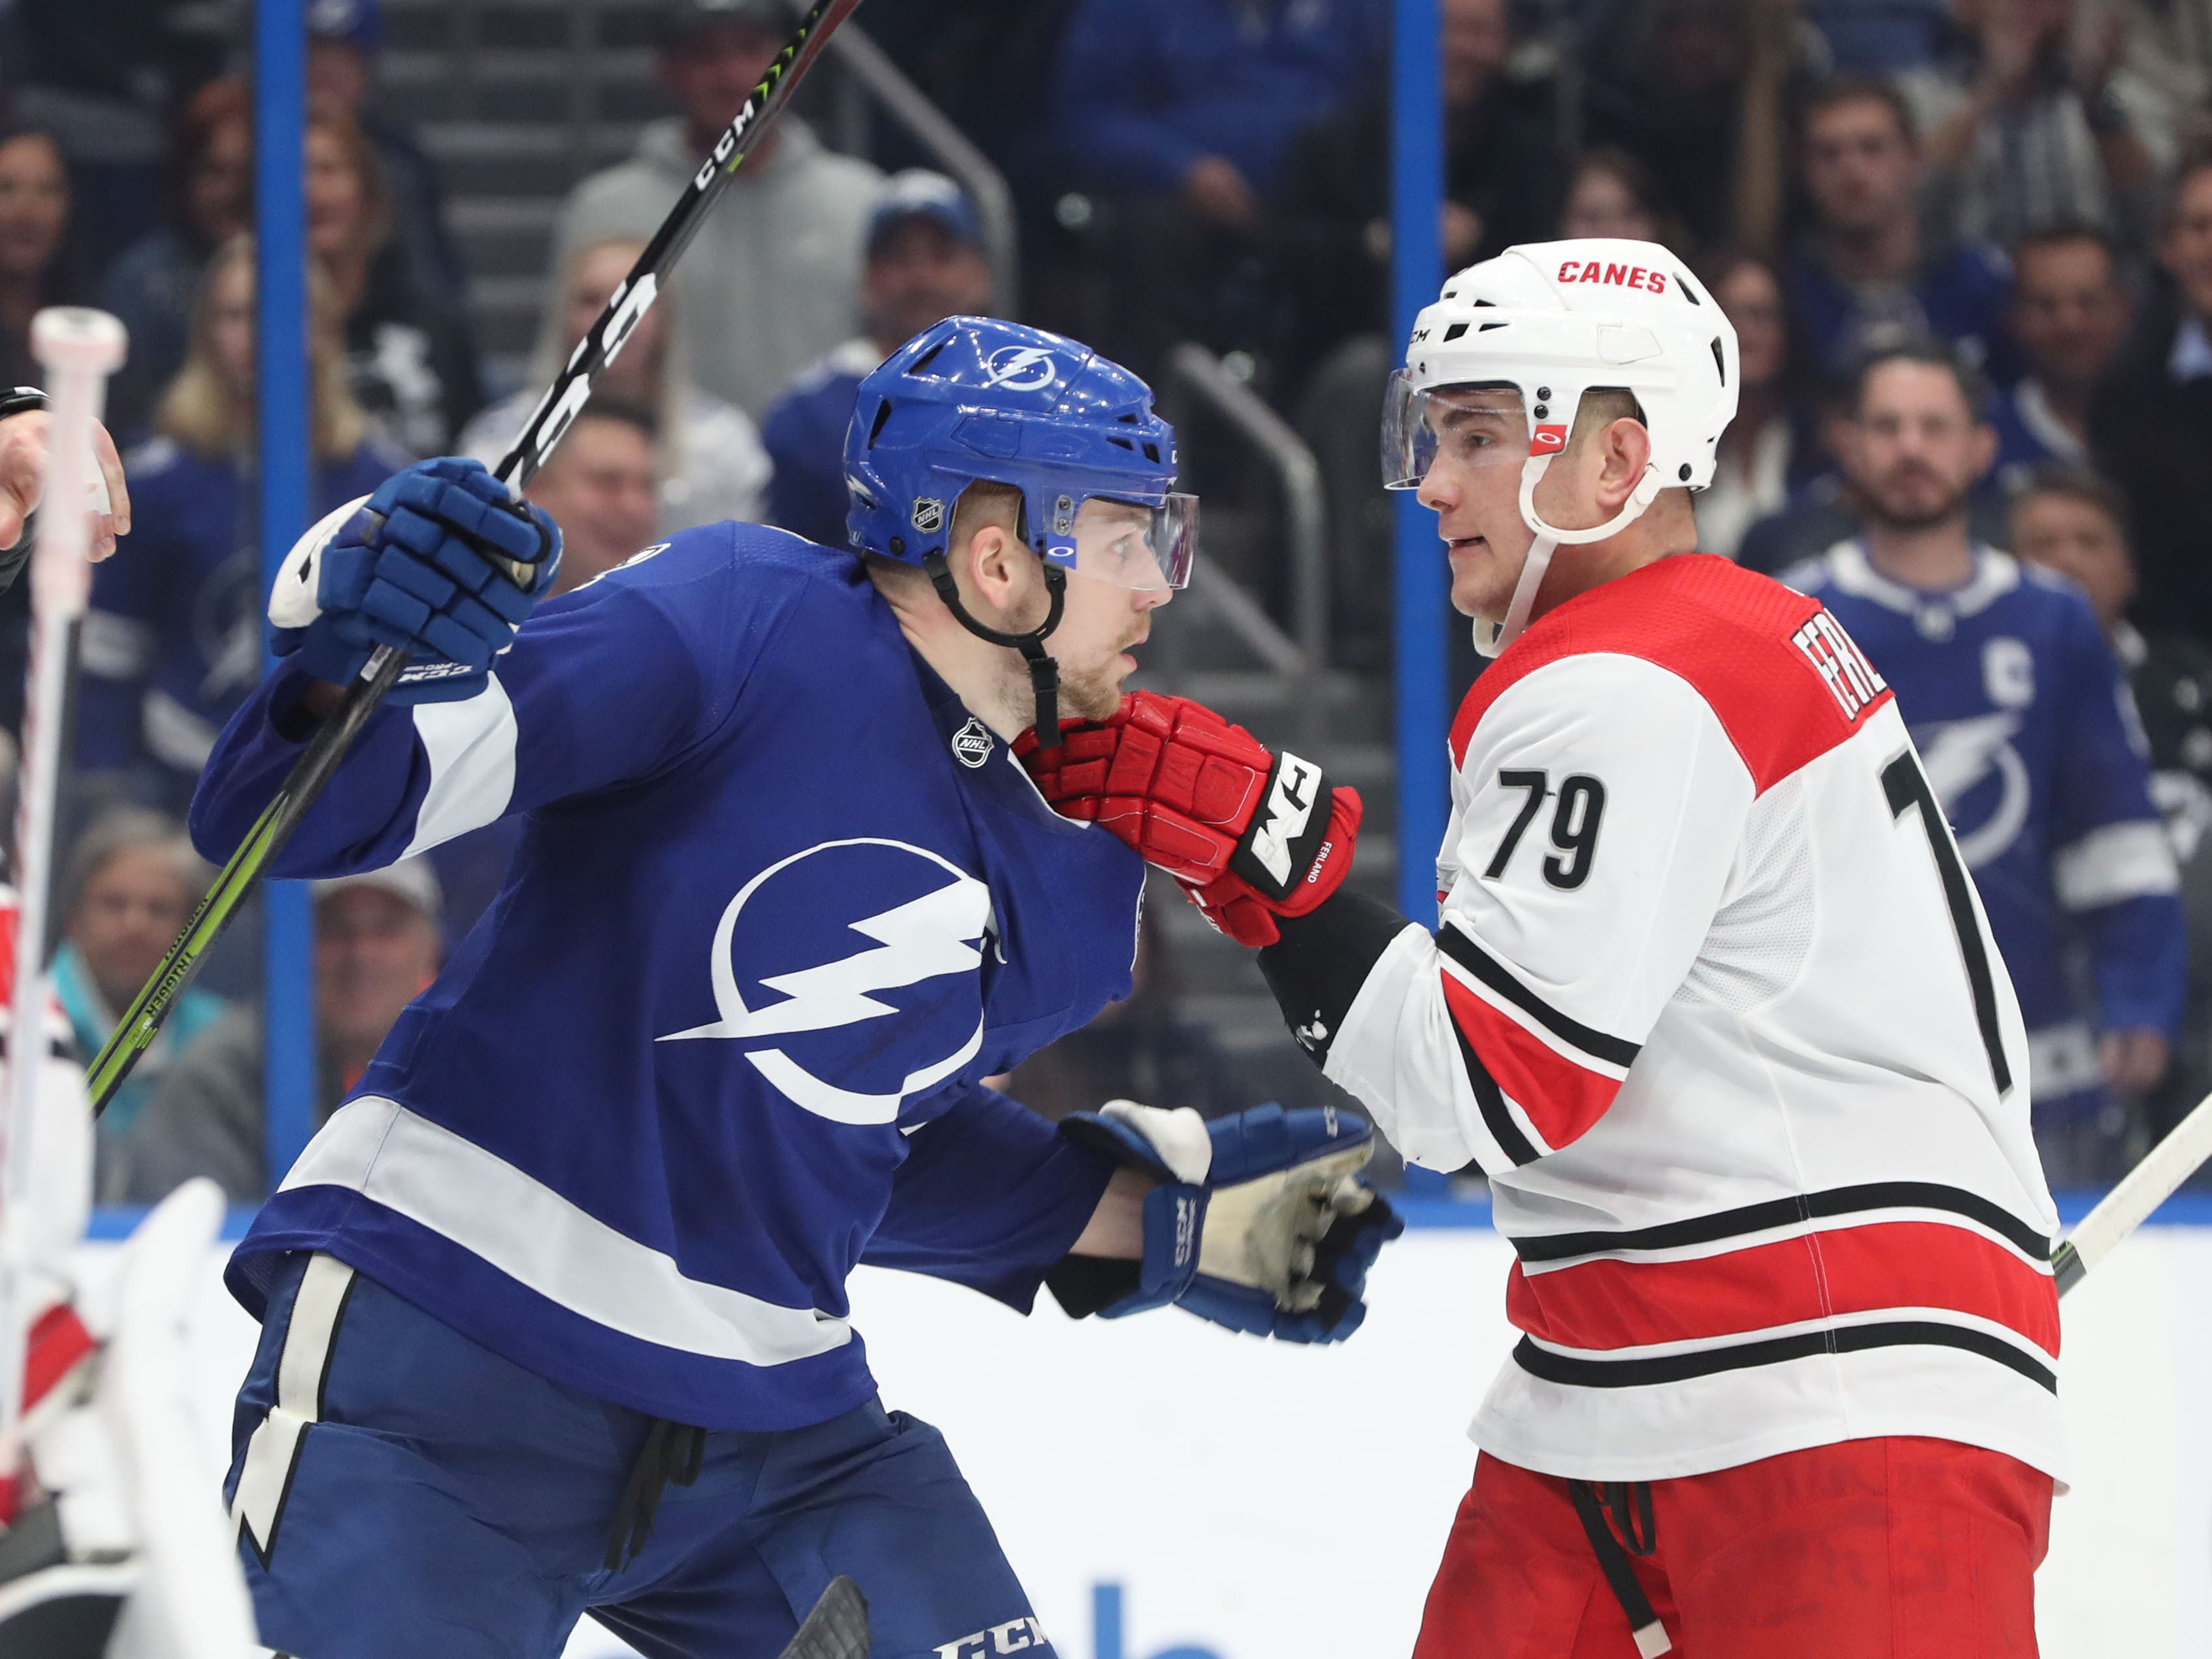 Jan. 10: Tampa Bay Lightning's Erik Cernak vs. Carolina Hurricanes' Micheal Ferland.